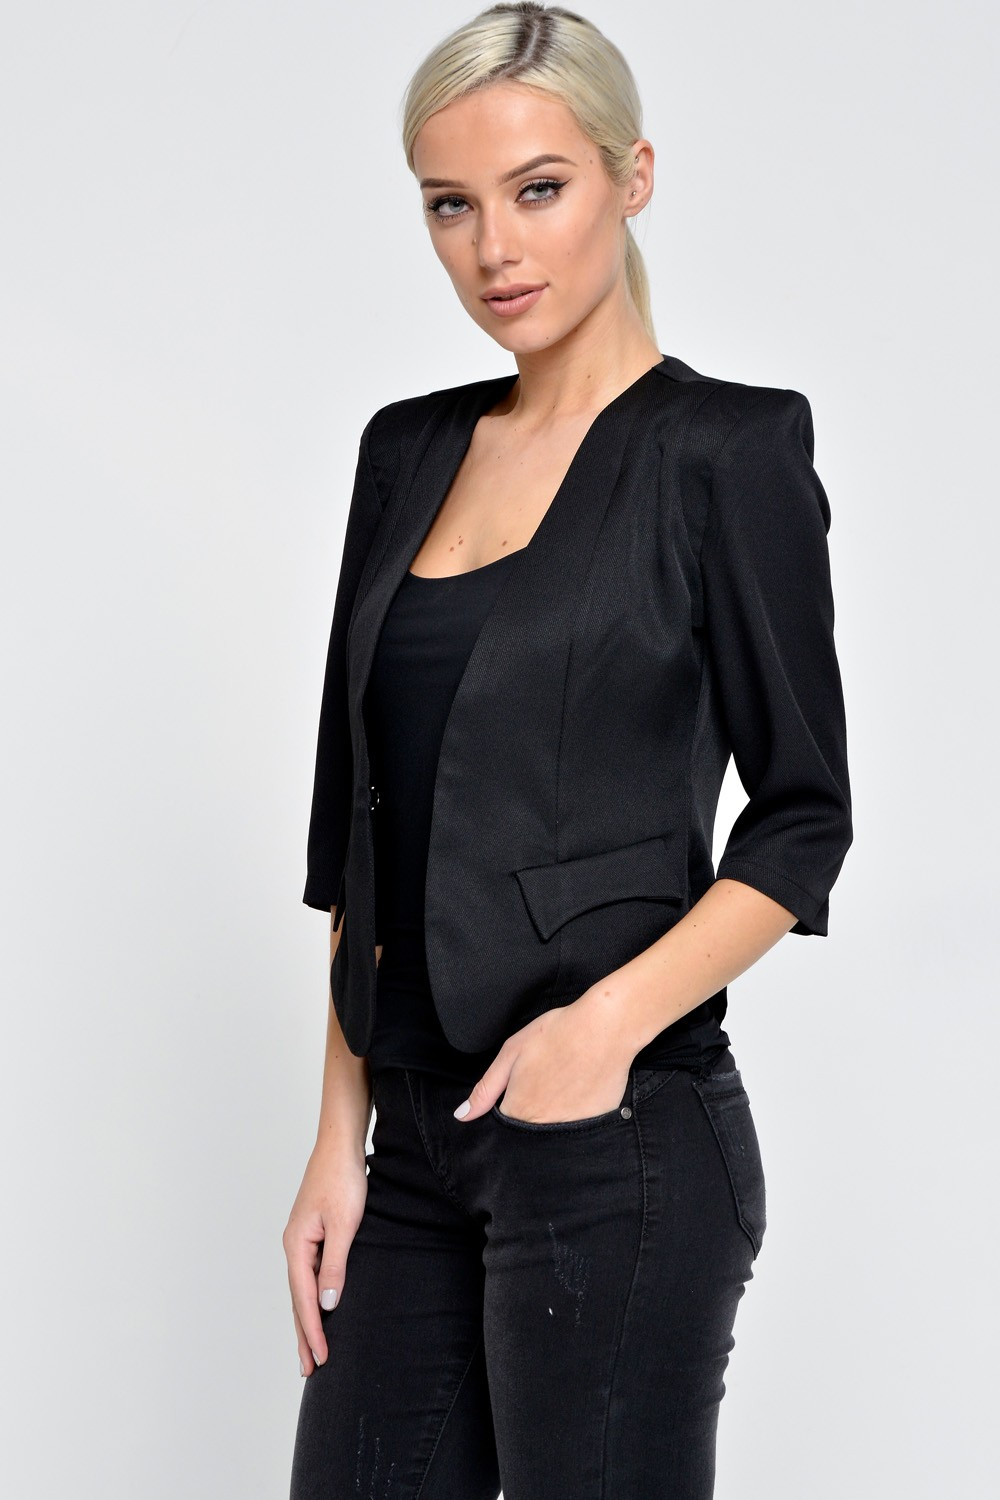 Competitive Black ONE SIZE Blazers online, Gamiss offers you Cropped Buttoned Blazer at $, we also offer Wholesale service. Cheap Fashion online retailer providing customers trendy and stylish clothing including different categories such as dresses, tops, swimwear.